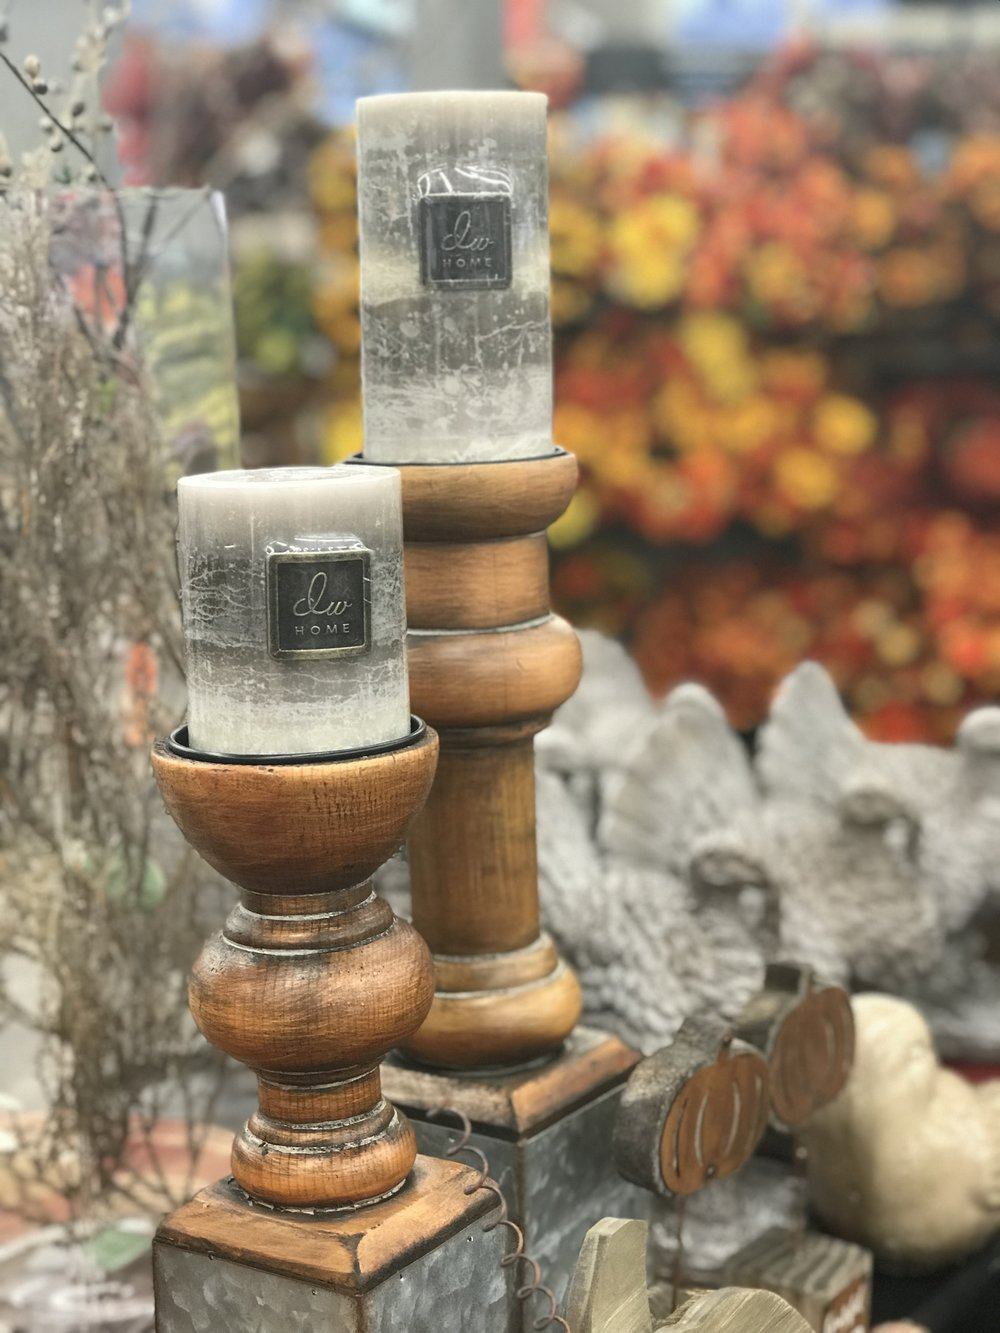 Rustic Fall Collection at Jeffrey Alans • 4 stores in Illinois & Indiana • Selection May Vary by Location